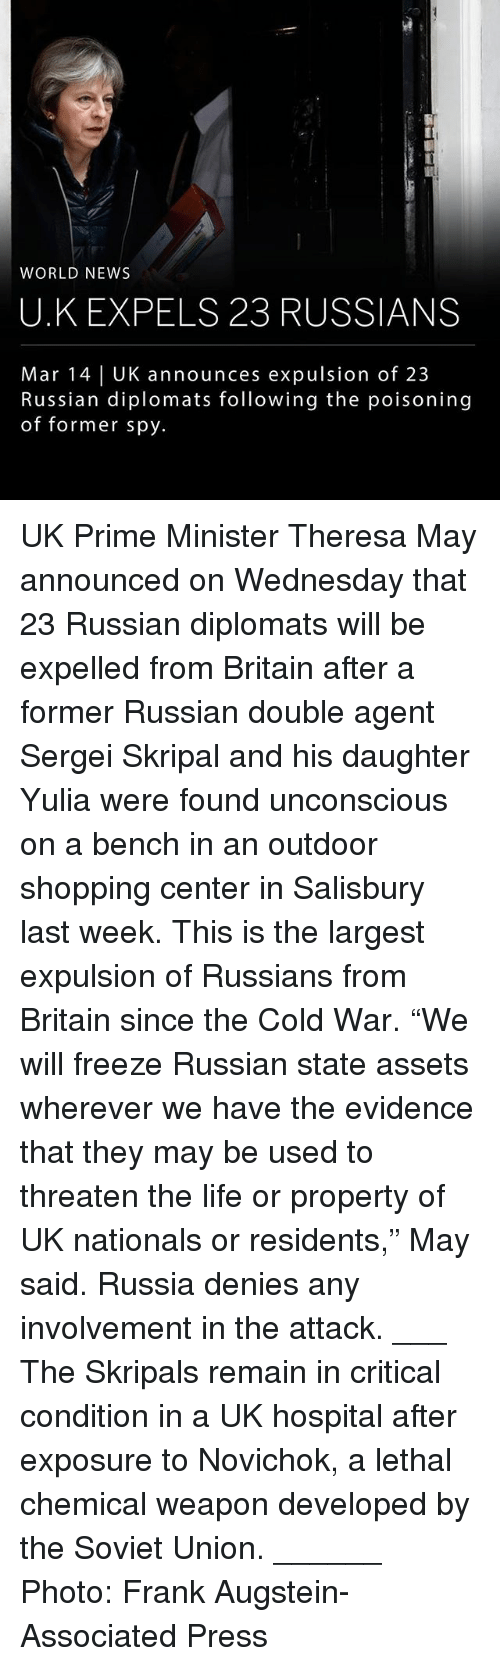 "Life, Memes, and News: WORLD NEWS  U.K EXPELS 23 RUSSIANS  Mar 14 | UK announces expulsion of 23  Russian diplomats following the poisoning  of former spy. UK Prime Minister Theresa May announced on Wednesday that 23 Russian diplomats will be expelled from Britain after a former Russian double agent Sergei Skripal and his daughter Yulia were found unconscious on a bench in an outdoor shopping center in Salisbury last week. This is the largest expulsion of Russians from Britain since the Cold War. ""We will freeze Russian state assets wherever we have the evidence that they may be used to threaten the life or property of UK nationals or residents,"" May said. Russia denies any involvement in the attack. ___ The Skripals remain in critical condition in a UK hospital after exposure to Novichok, a lethal chemical weapon developed by the Soviet Union. ______ Photo: Frank Augstein-Associated Press"